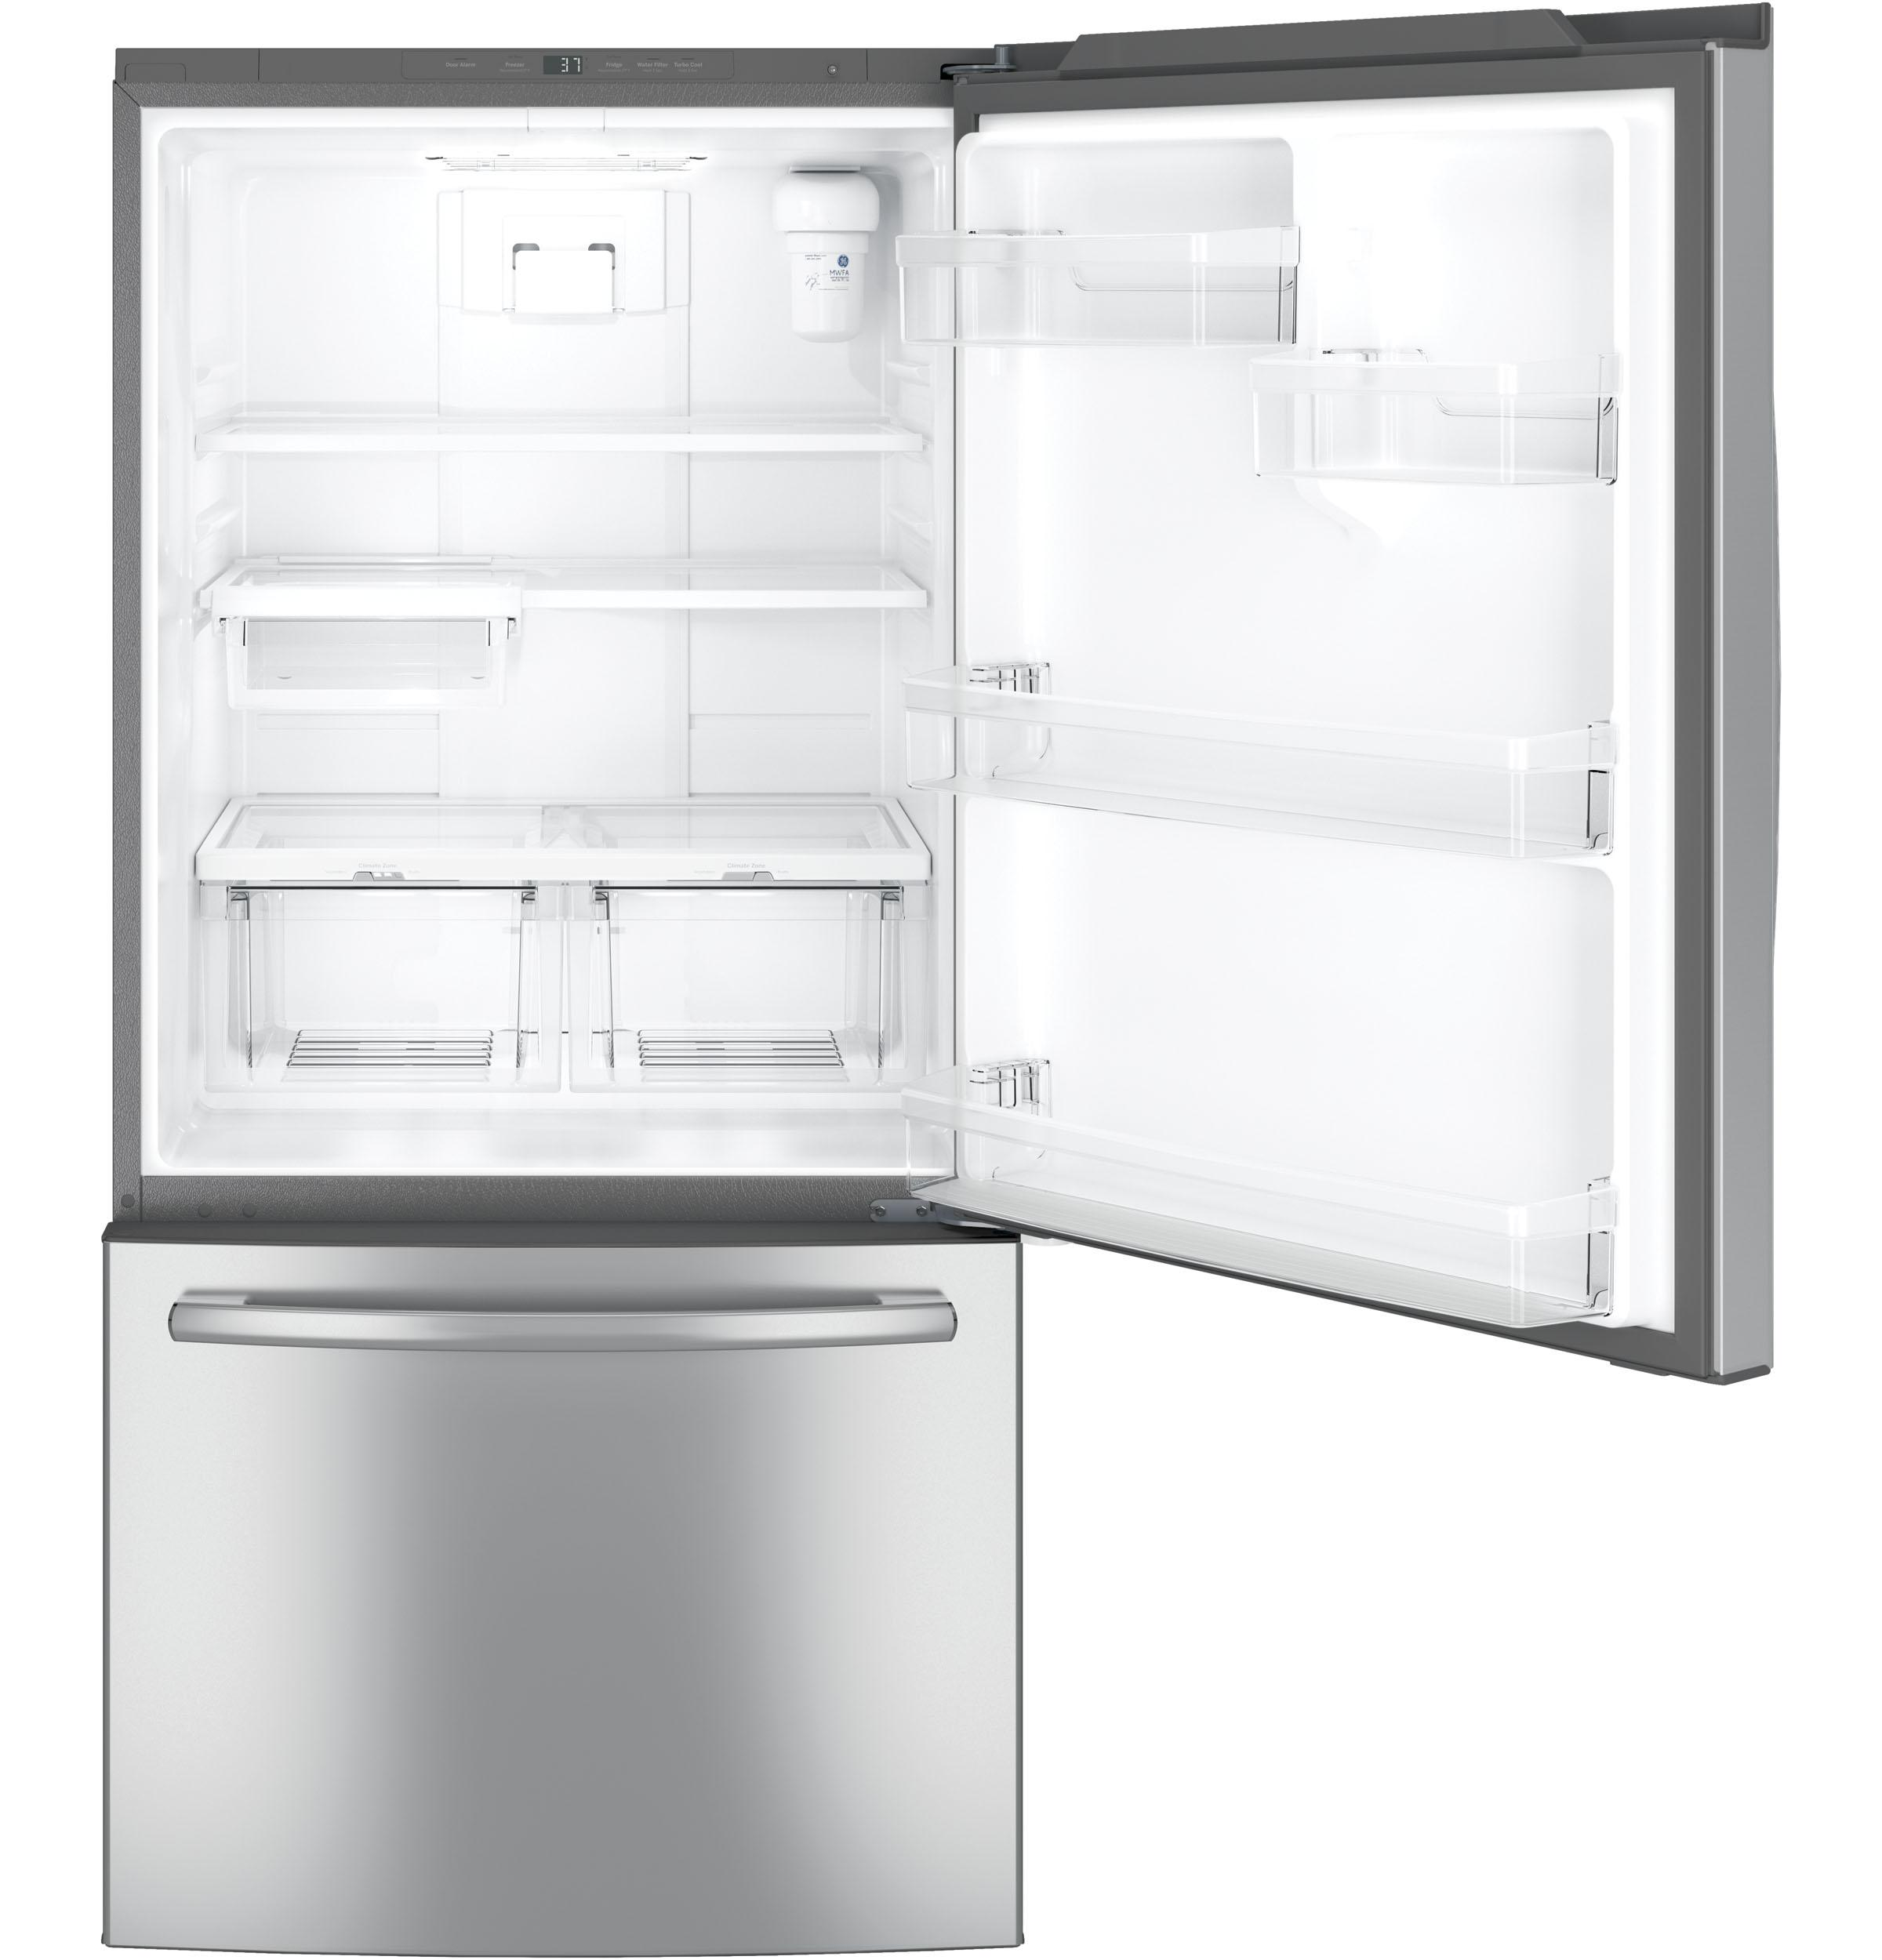 freezer and internal vitrifrigo fridge total drawer compressor portable refrigerator double of with door capacity lt